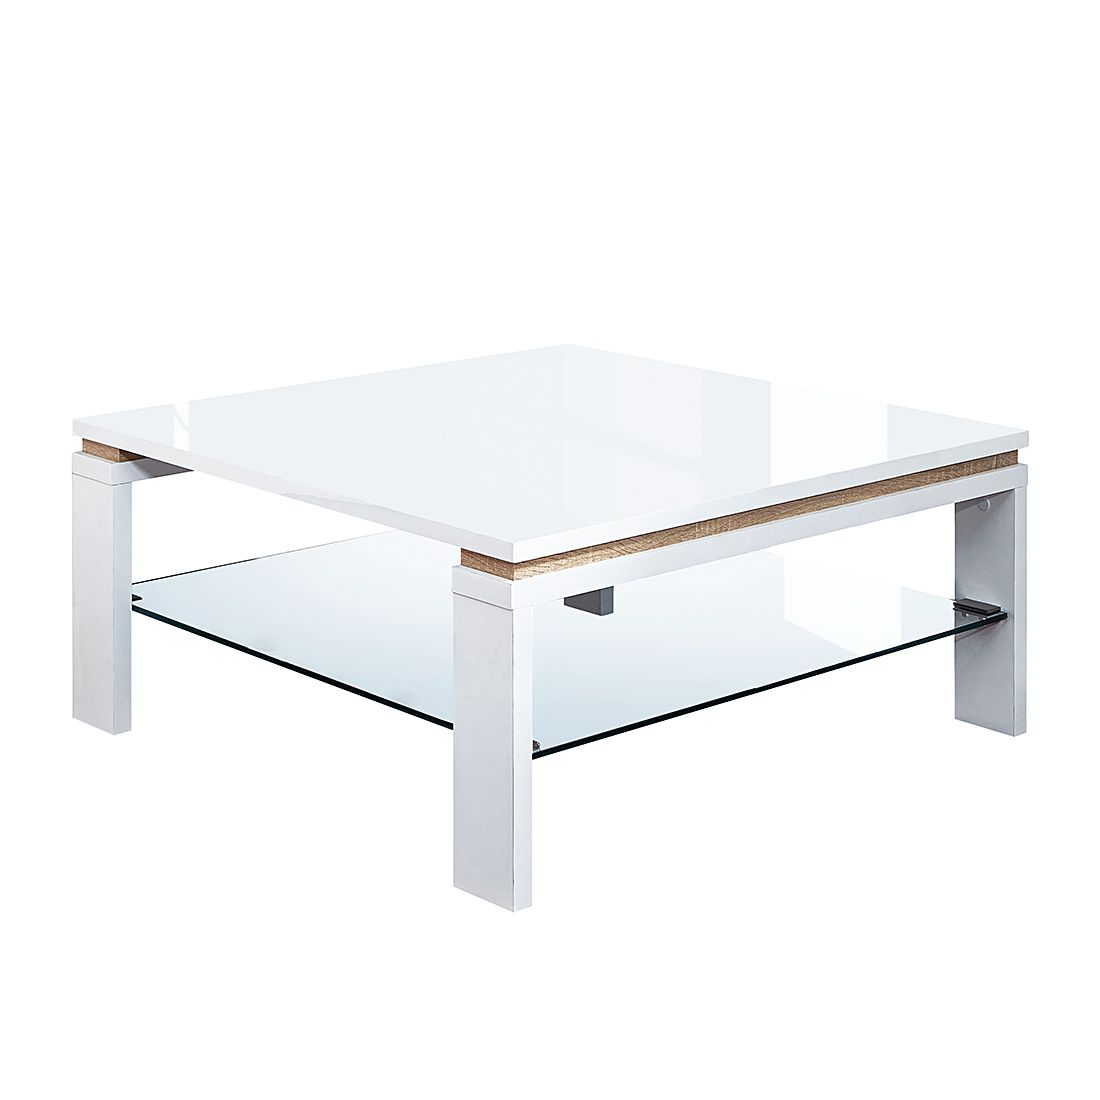 Table basse Campo - Blanc brillant / Imitation chêne Sonoma, Fredriks